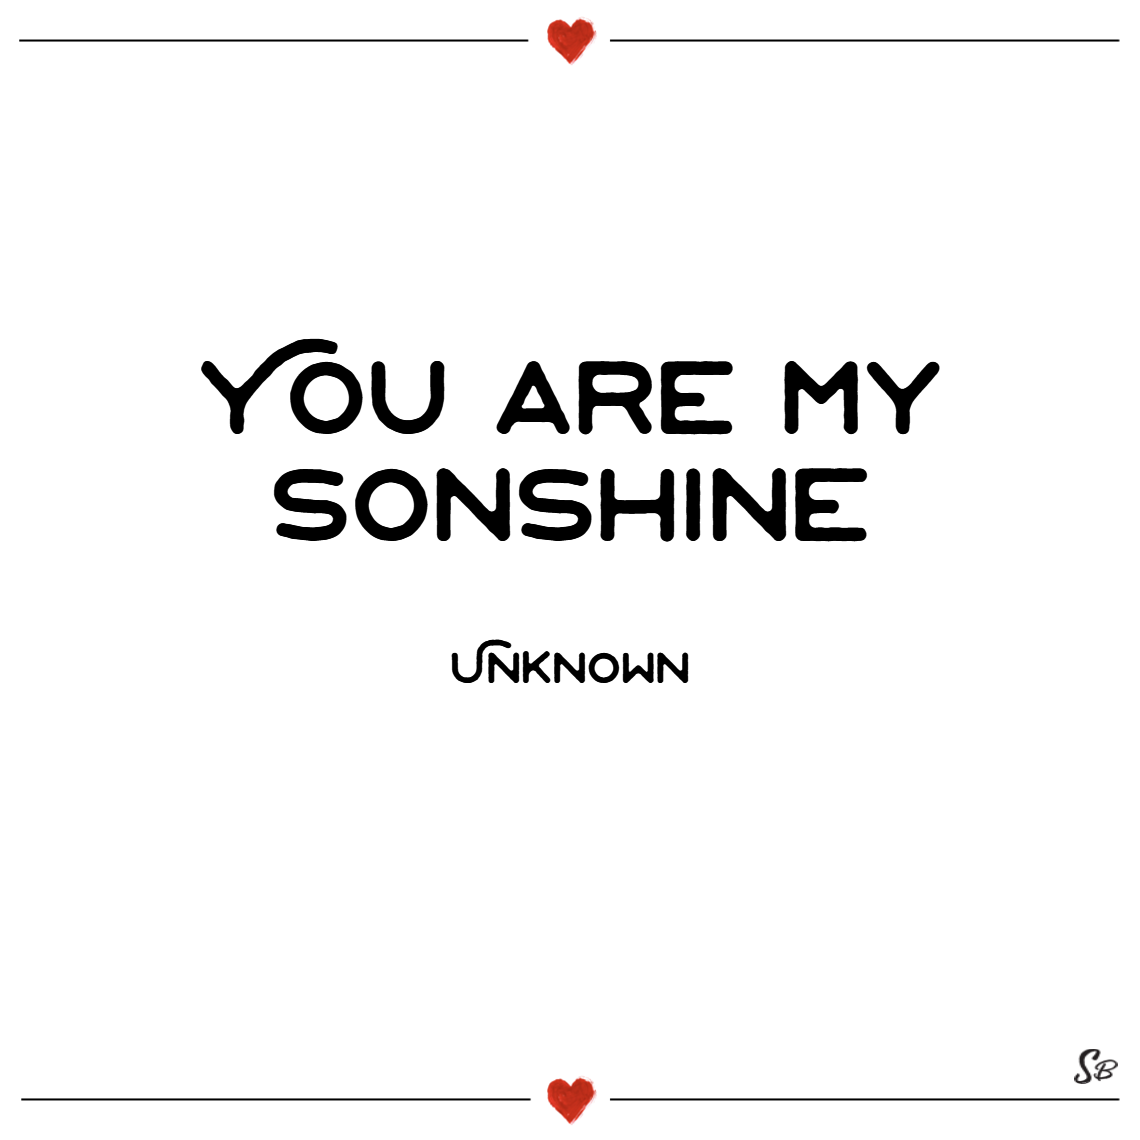 You are my sonshine. – unknown